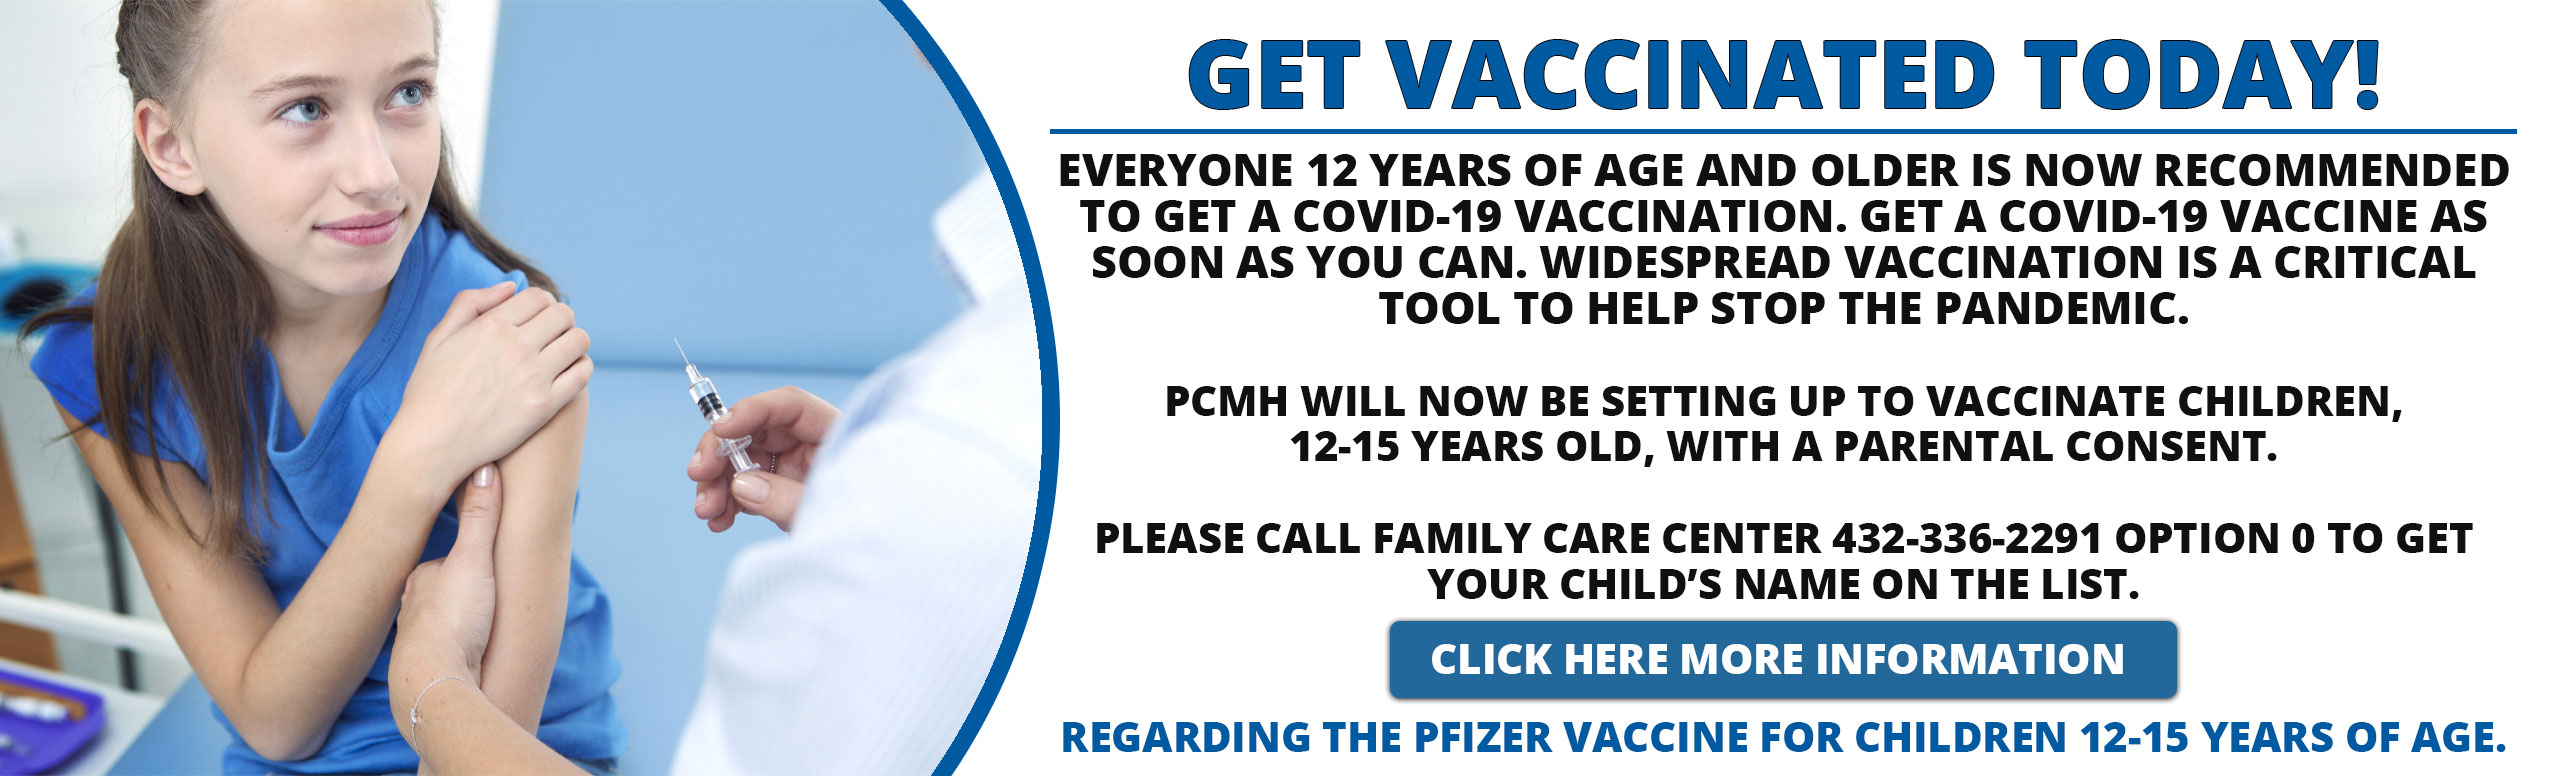 Everyone 12 years of age and older is now recommended to get a COVID-19 vaccination. Get a COVID-19 vaccine as soon as you can. Widespread vaccination is a critical tool to help stop the pandemic.     PCMH will now be setting up to vaccinate children, 12-15 years old, with a parental consent.   Please call Family Care Center 432-336-2291 Option 0 to get your child's name on the list.      Please see the listed website below for more information regarding the Pfizer vaccine for children 12-15 years of age.  Pfizer-BioNTech COVID-19 Vaccine EUA Fact Sheet for Recipients and Caregivers